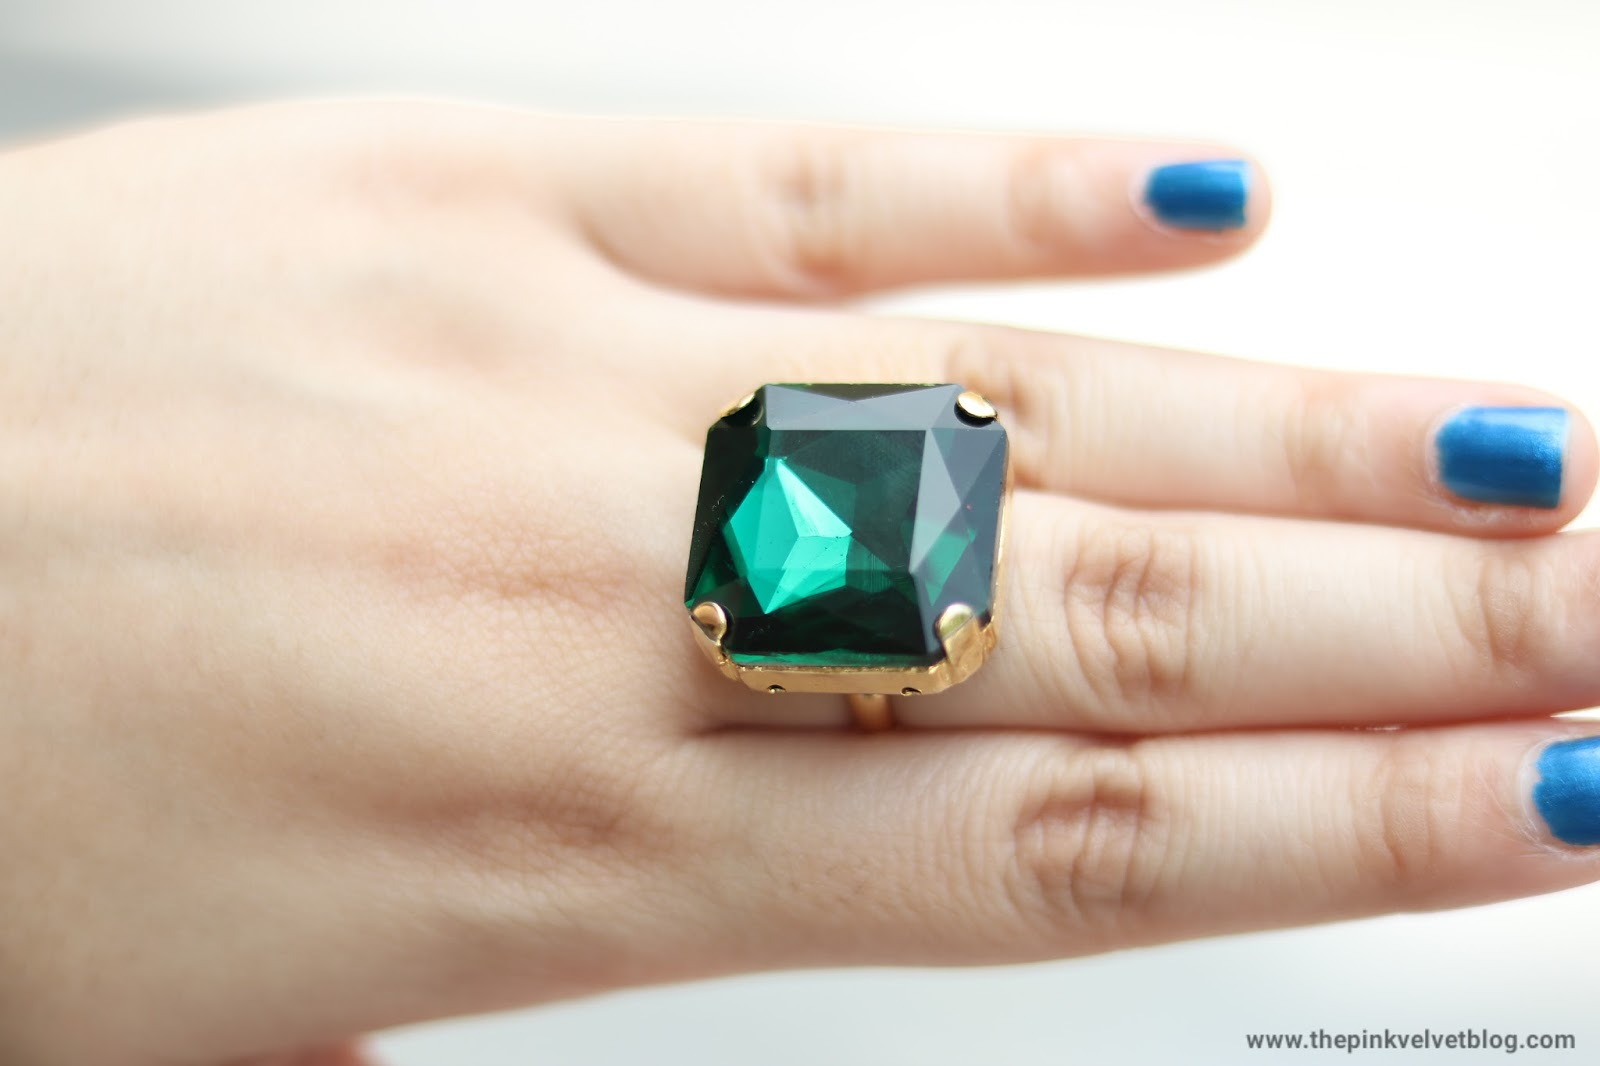 Solitaire Finger Ring in Gemstone by Khushboo Jewellery